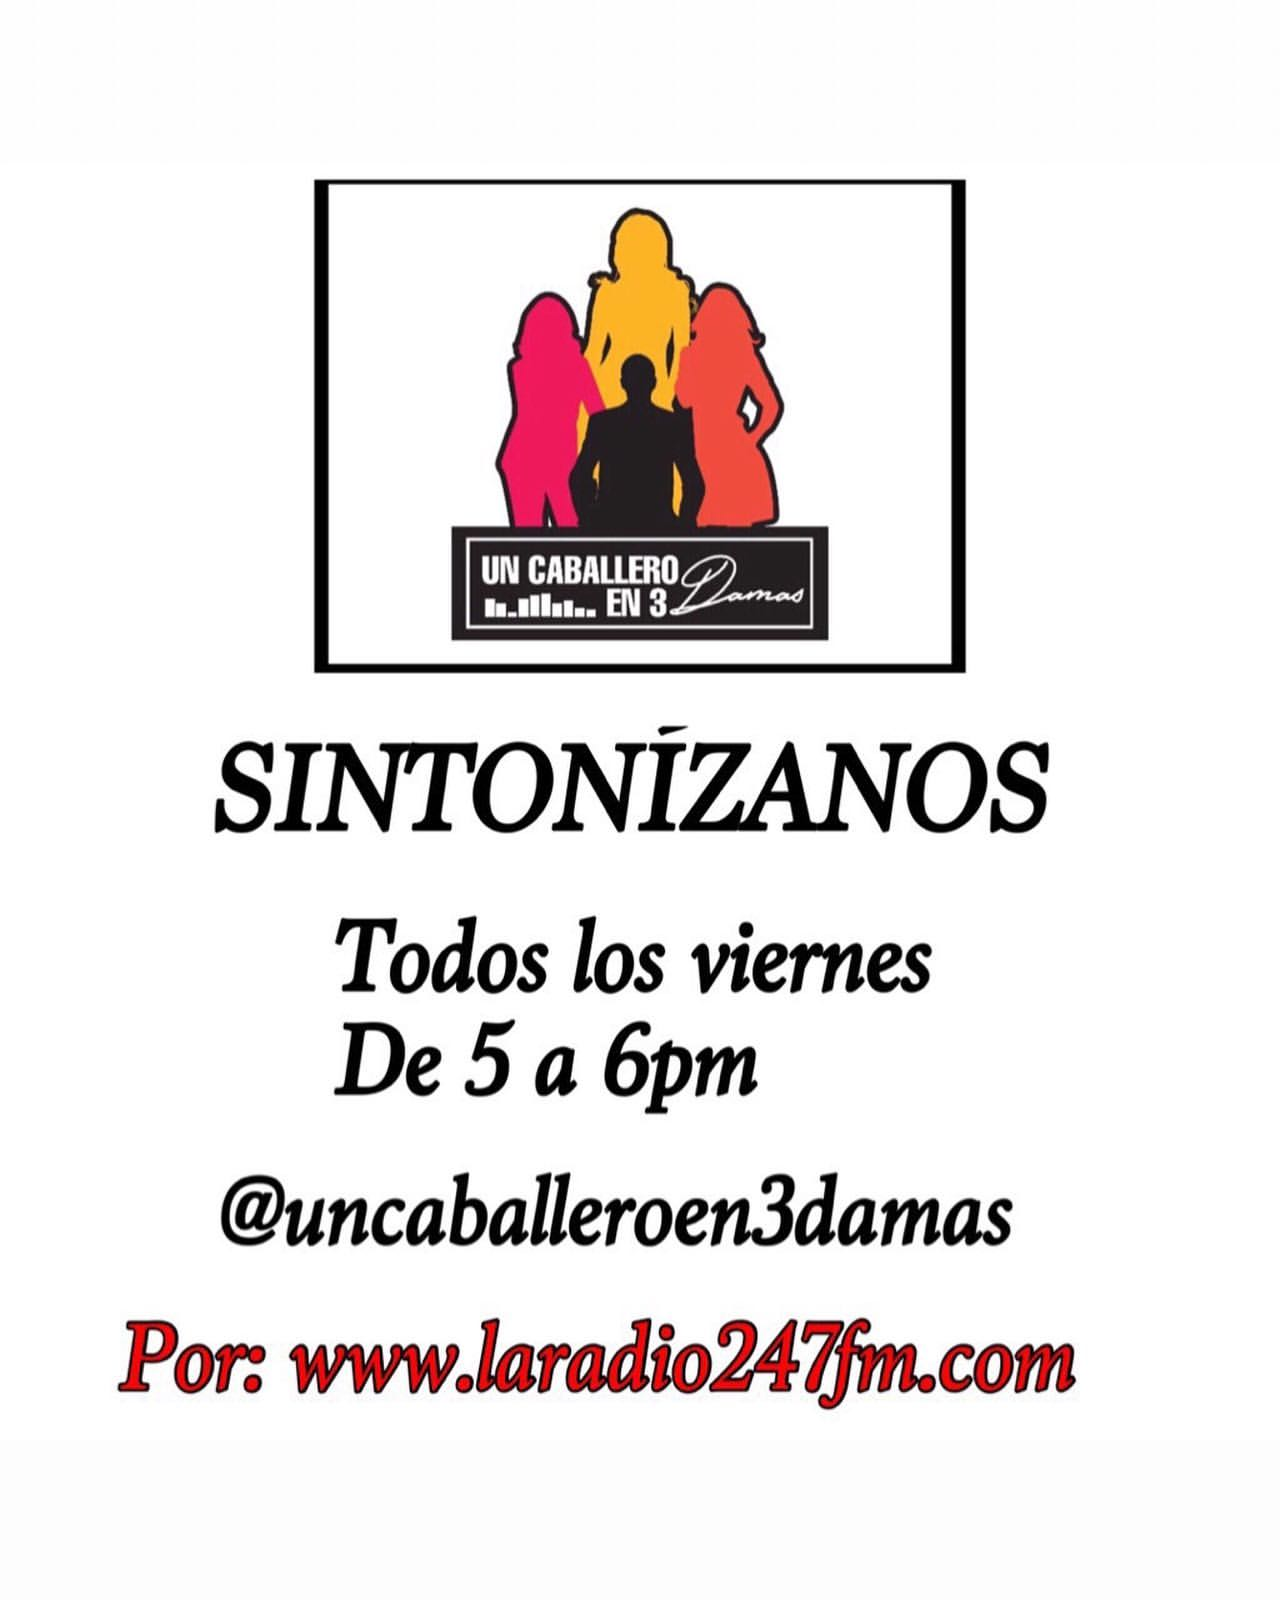 UN CABALLERO EN3 DAMAS BLOQUE 2 6 DIC #LARADIO247FM https://youtu.be/Mzod-7mtsKE